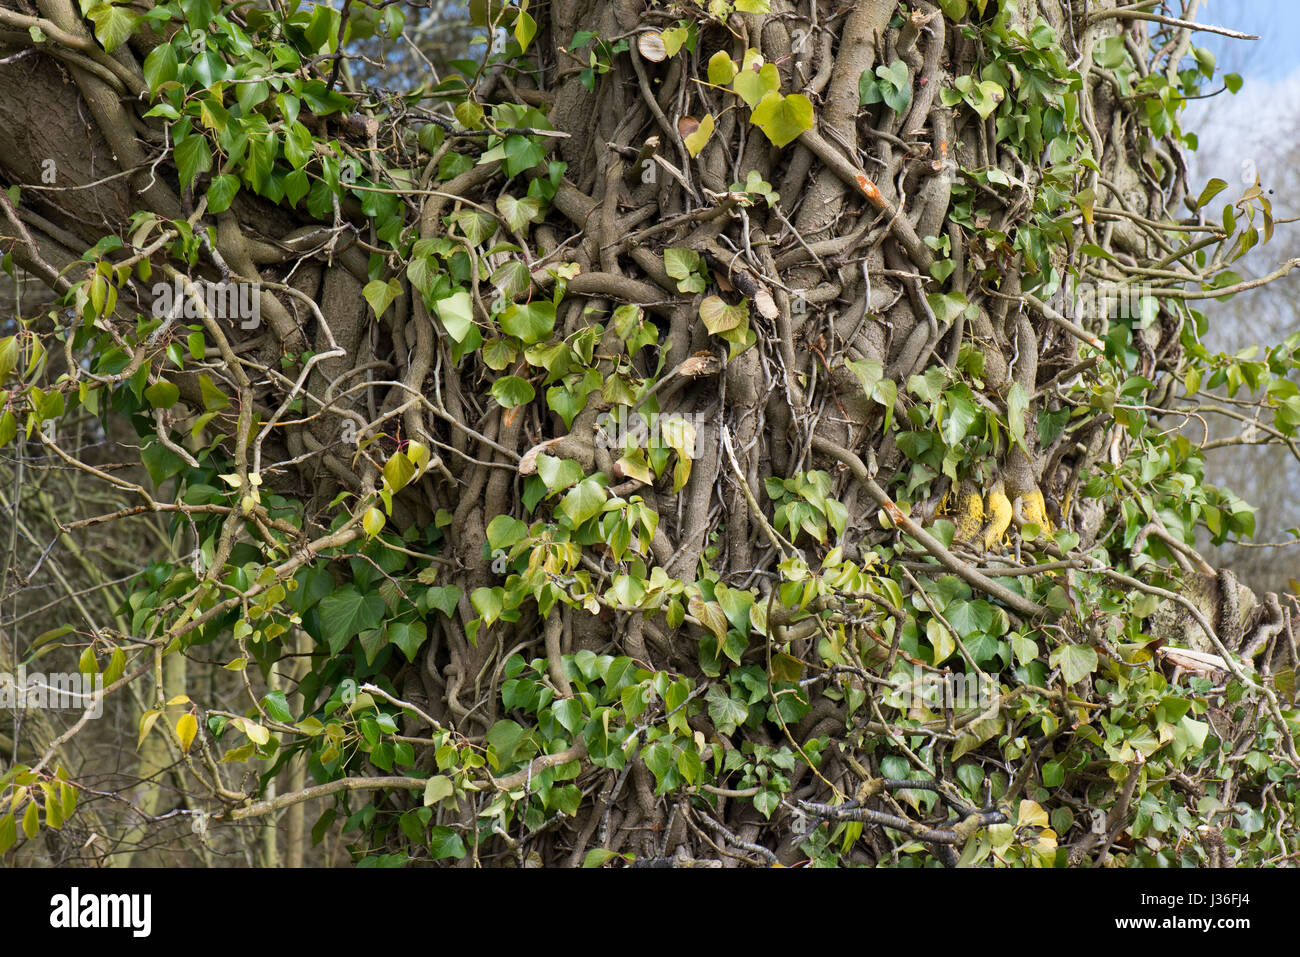 Old and long established common ivy, Hedera helix, twisting and interwoven around the trunk of a tree with the leaves - Stock Image